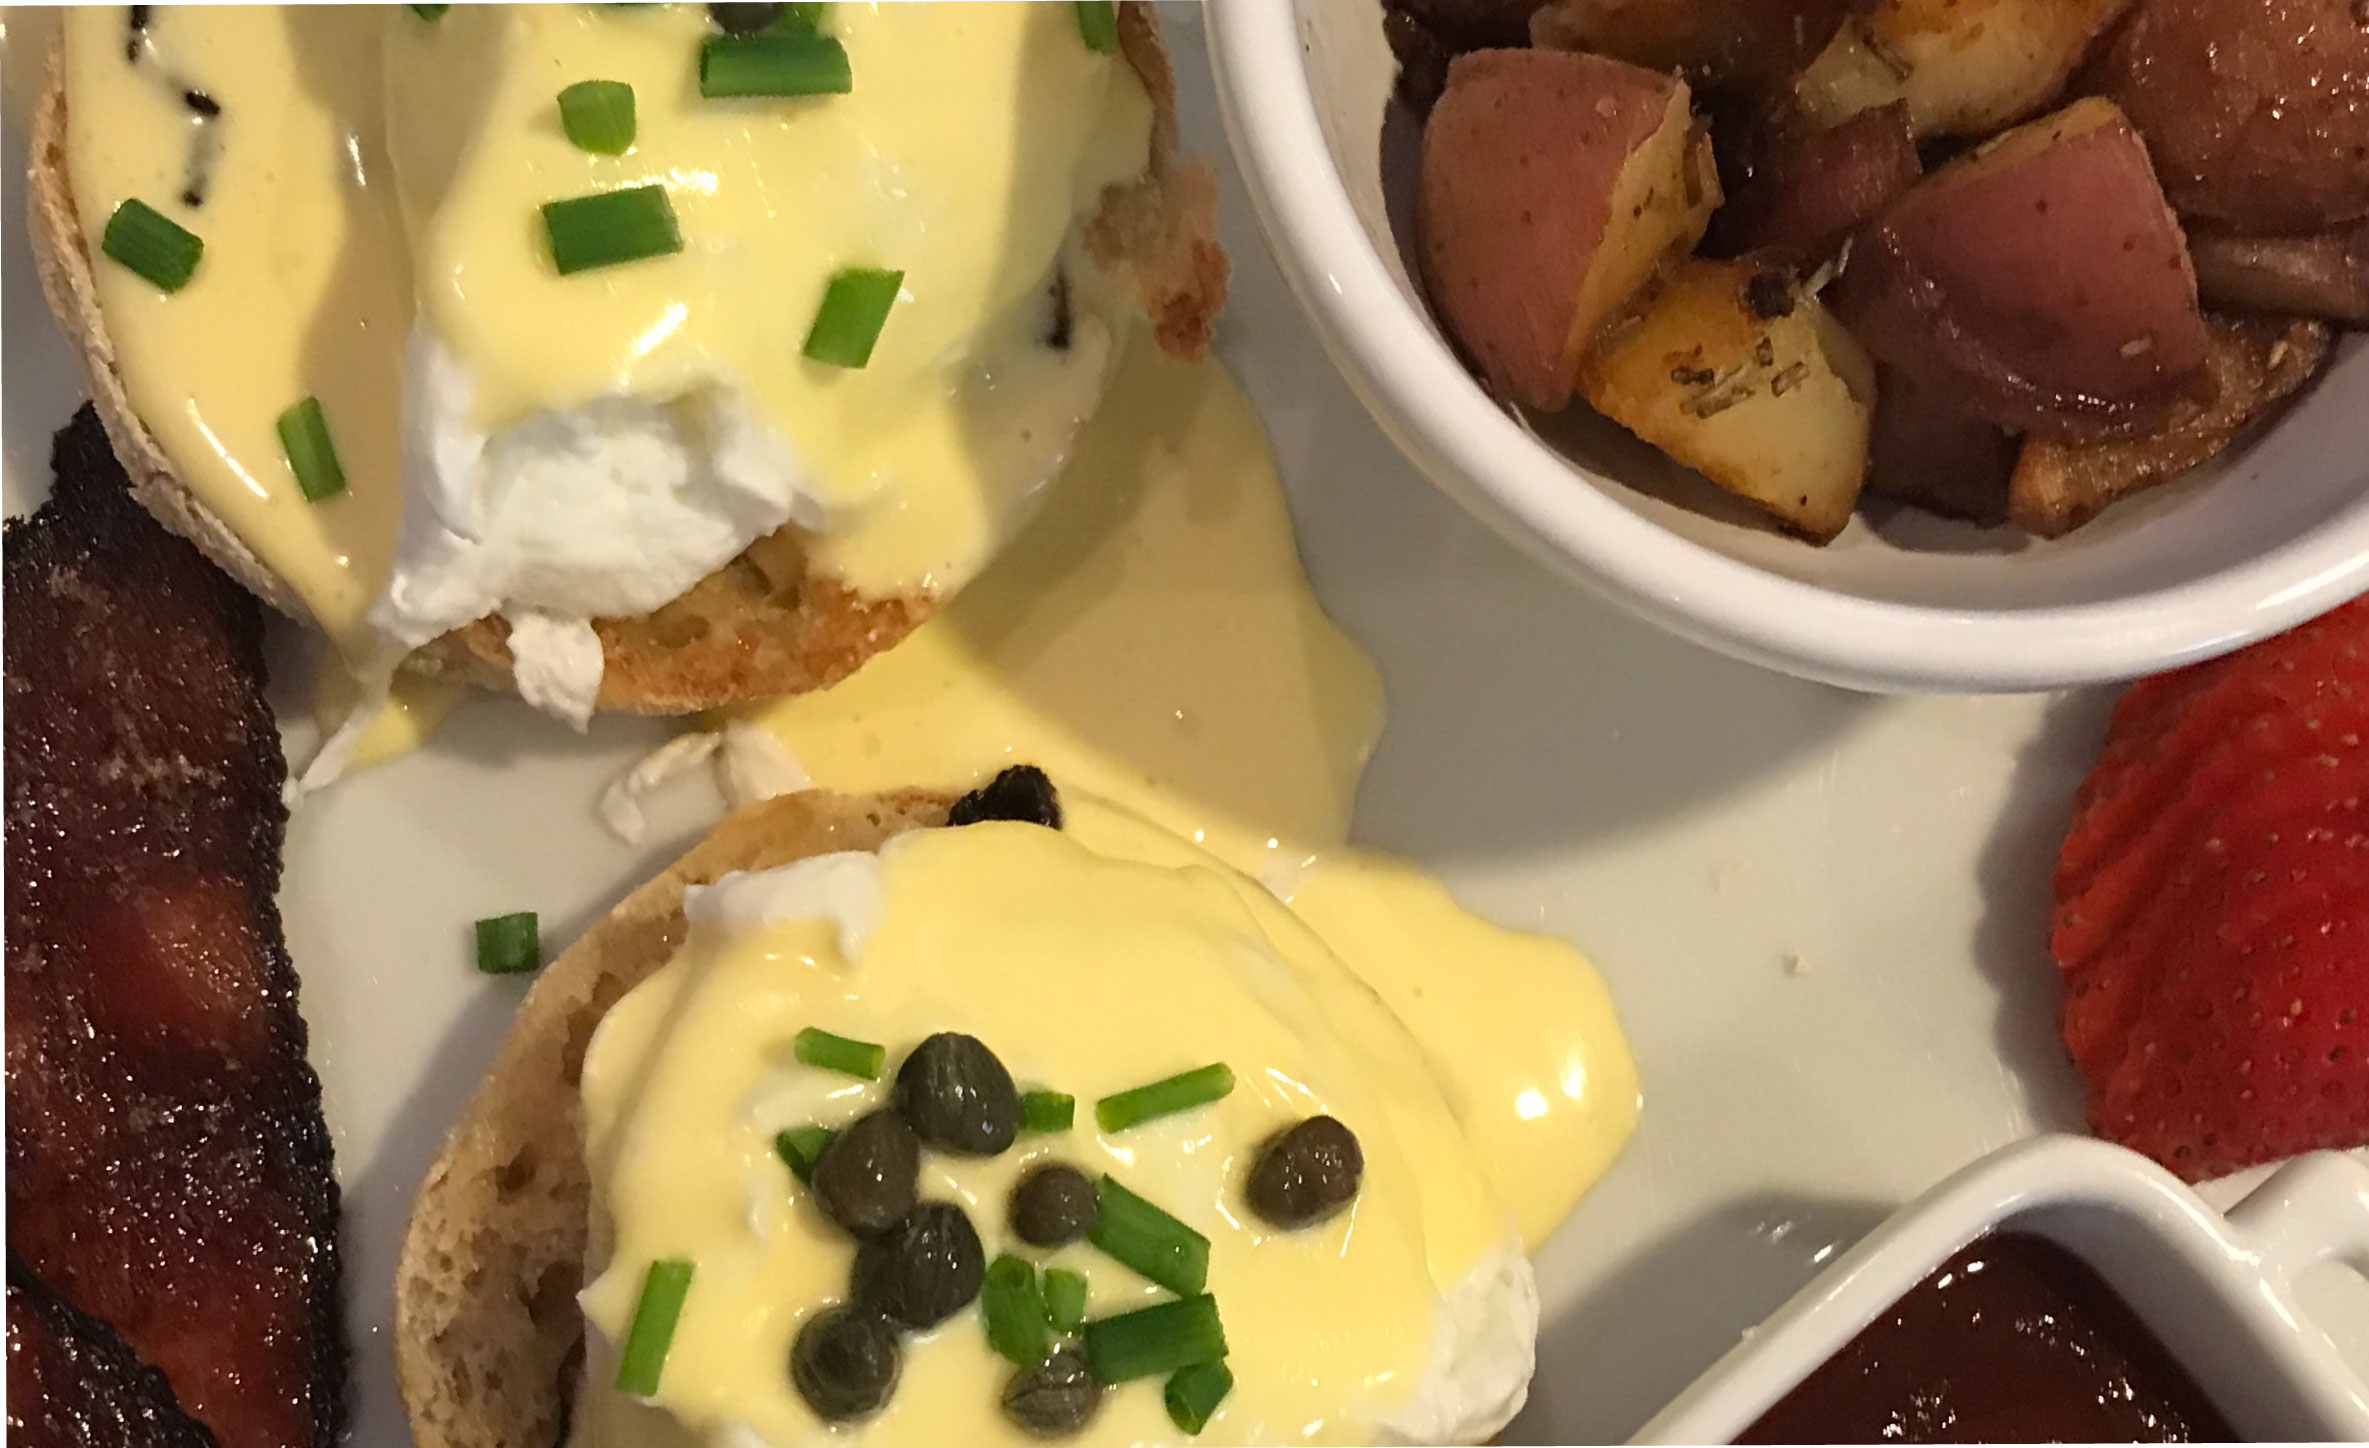 Holla at our Hollandaise | MIV Gourmet Breakfast